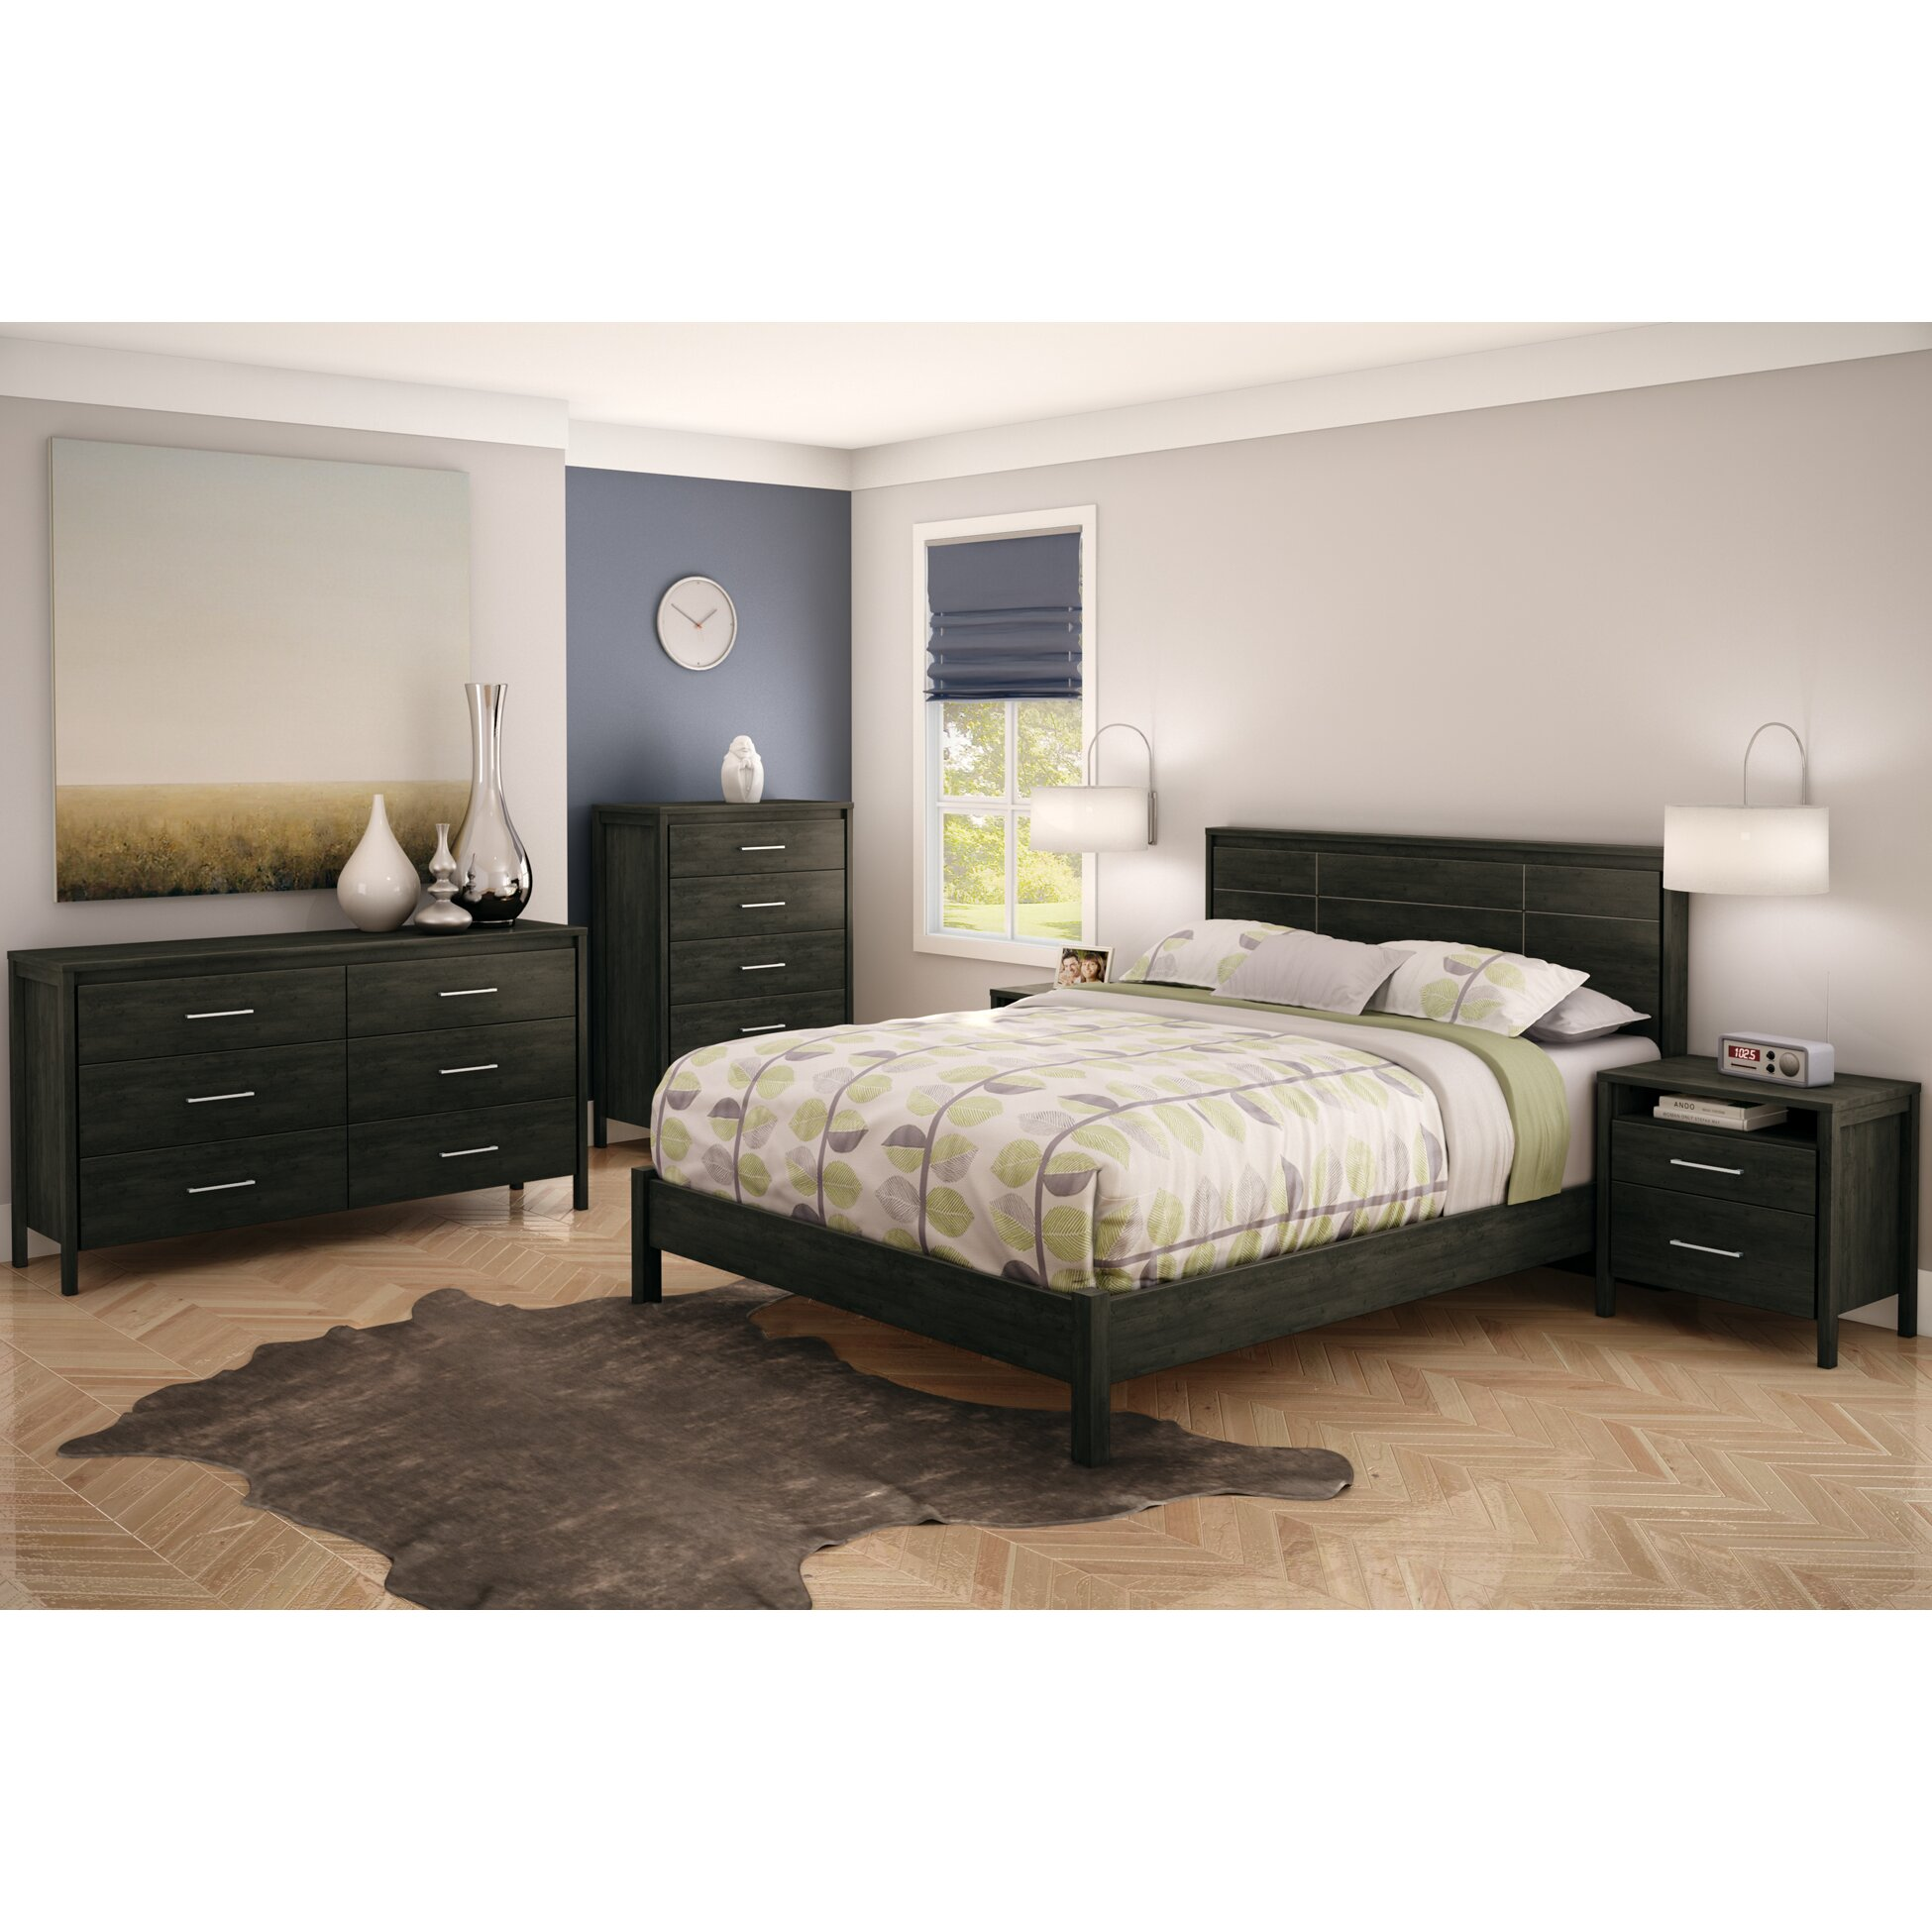 South shore gravity queen platform customizable bedroom for Bedroom furniture sets queen